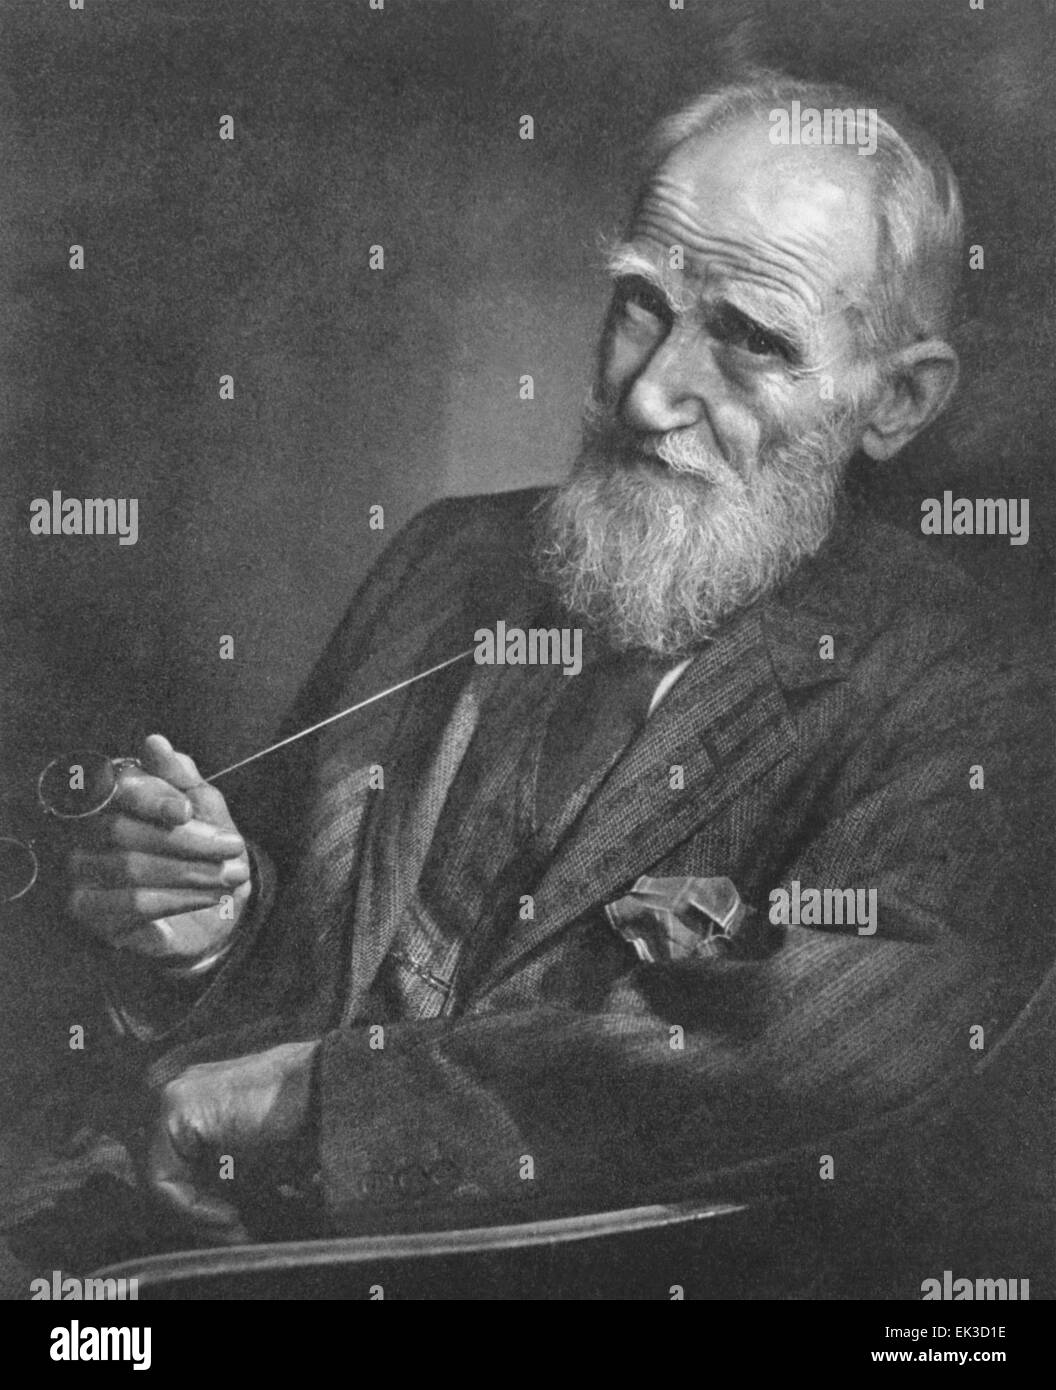 Pictured in this reproduced file image is Irish playwright, George Bernard Shaw, with 'pince-nez' spectacles. Stock Photo